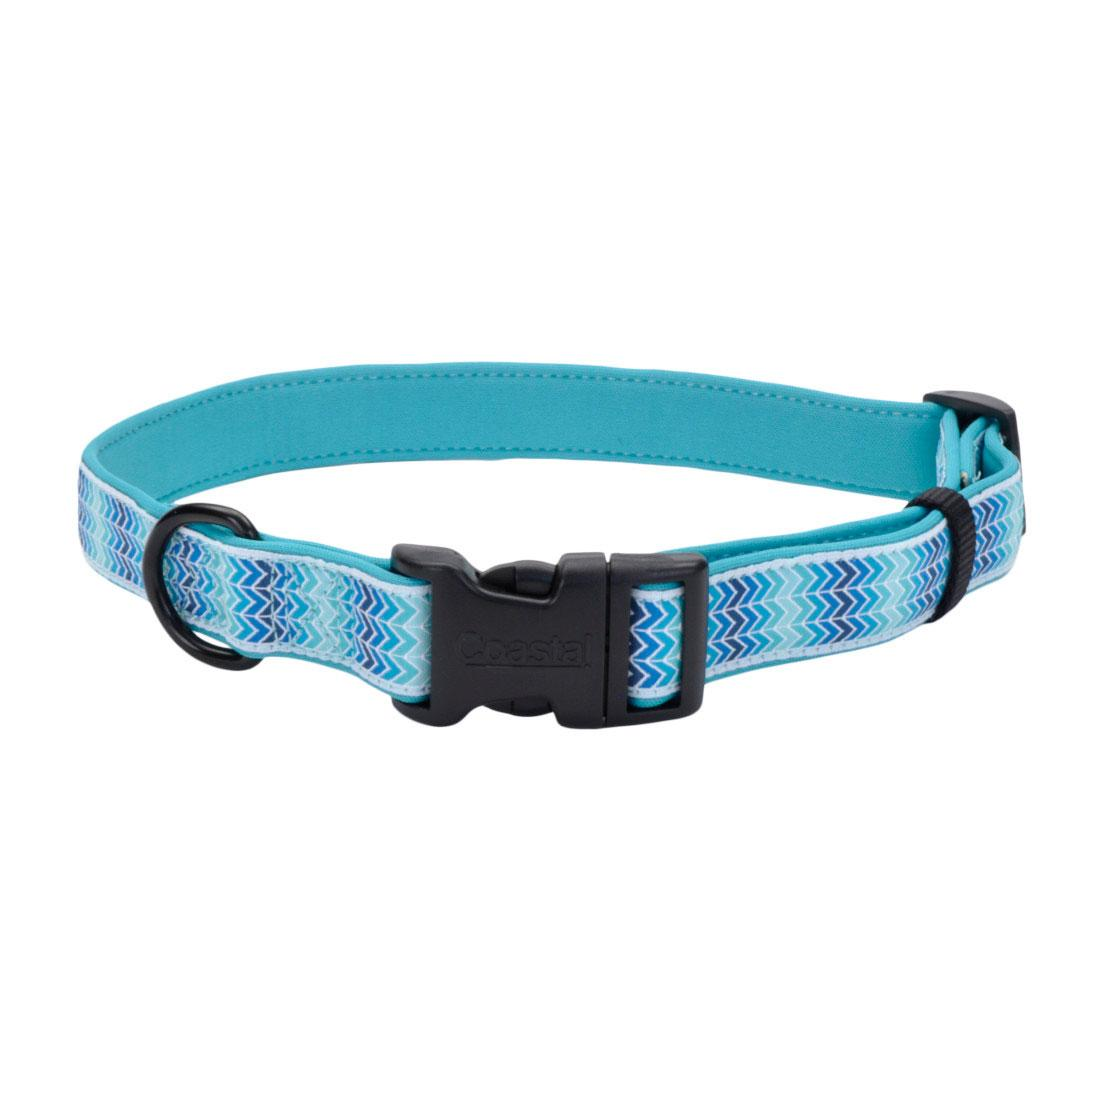 Ribbon Weave Dog Collar, Teal Gradient Chevrons Image